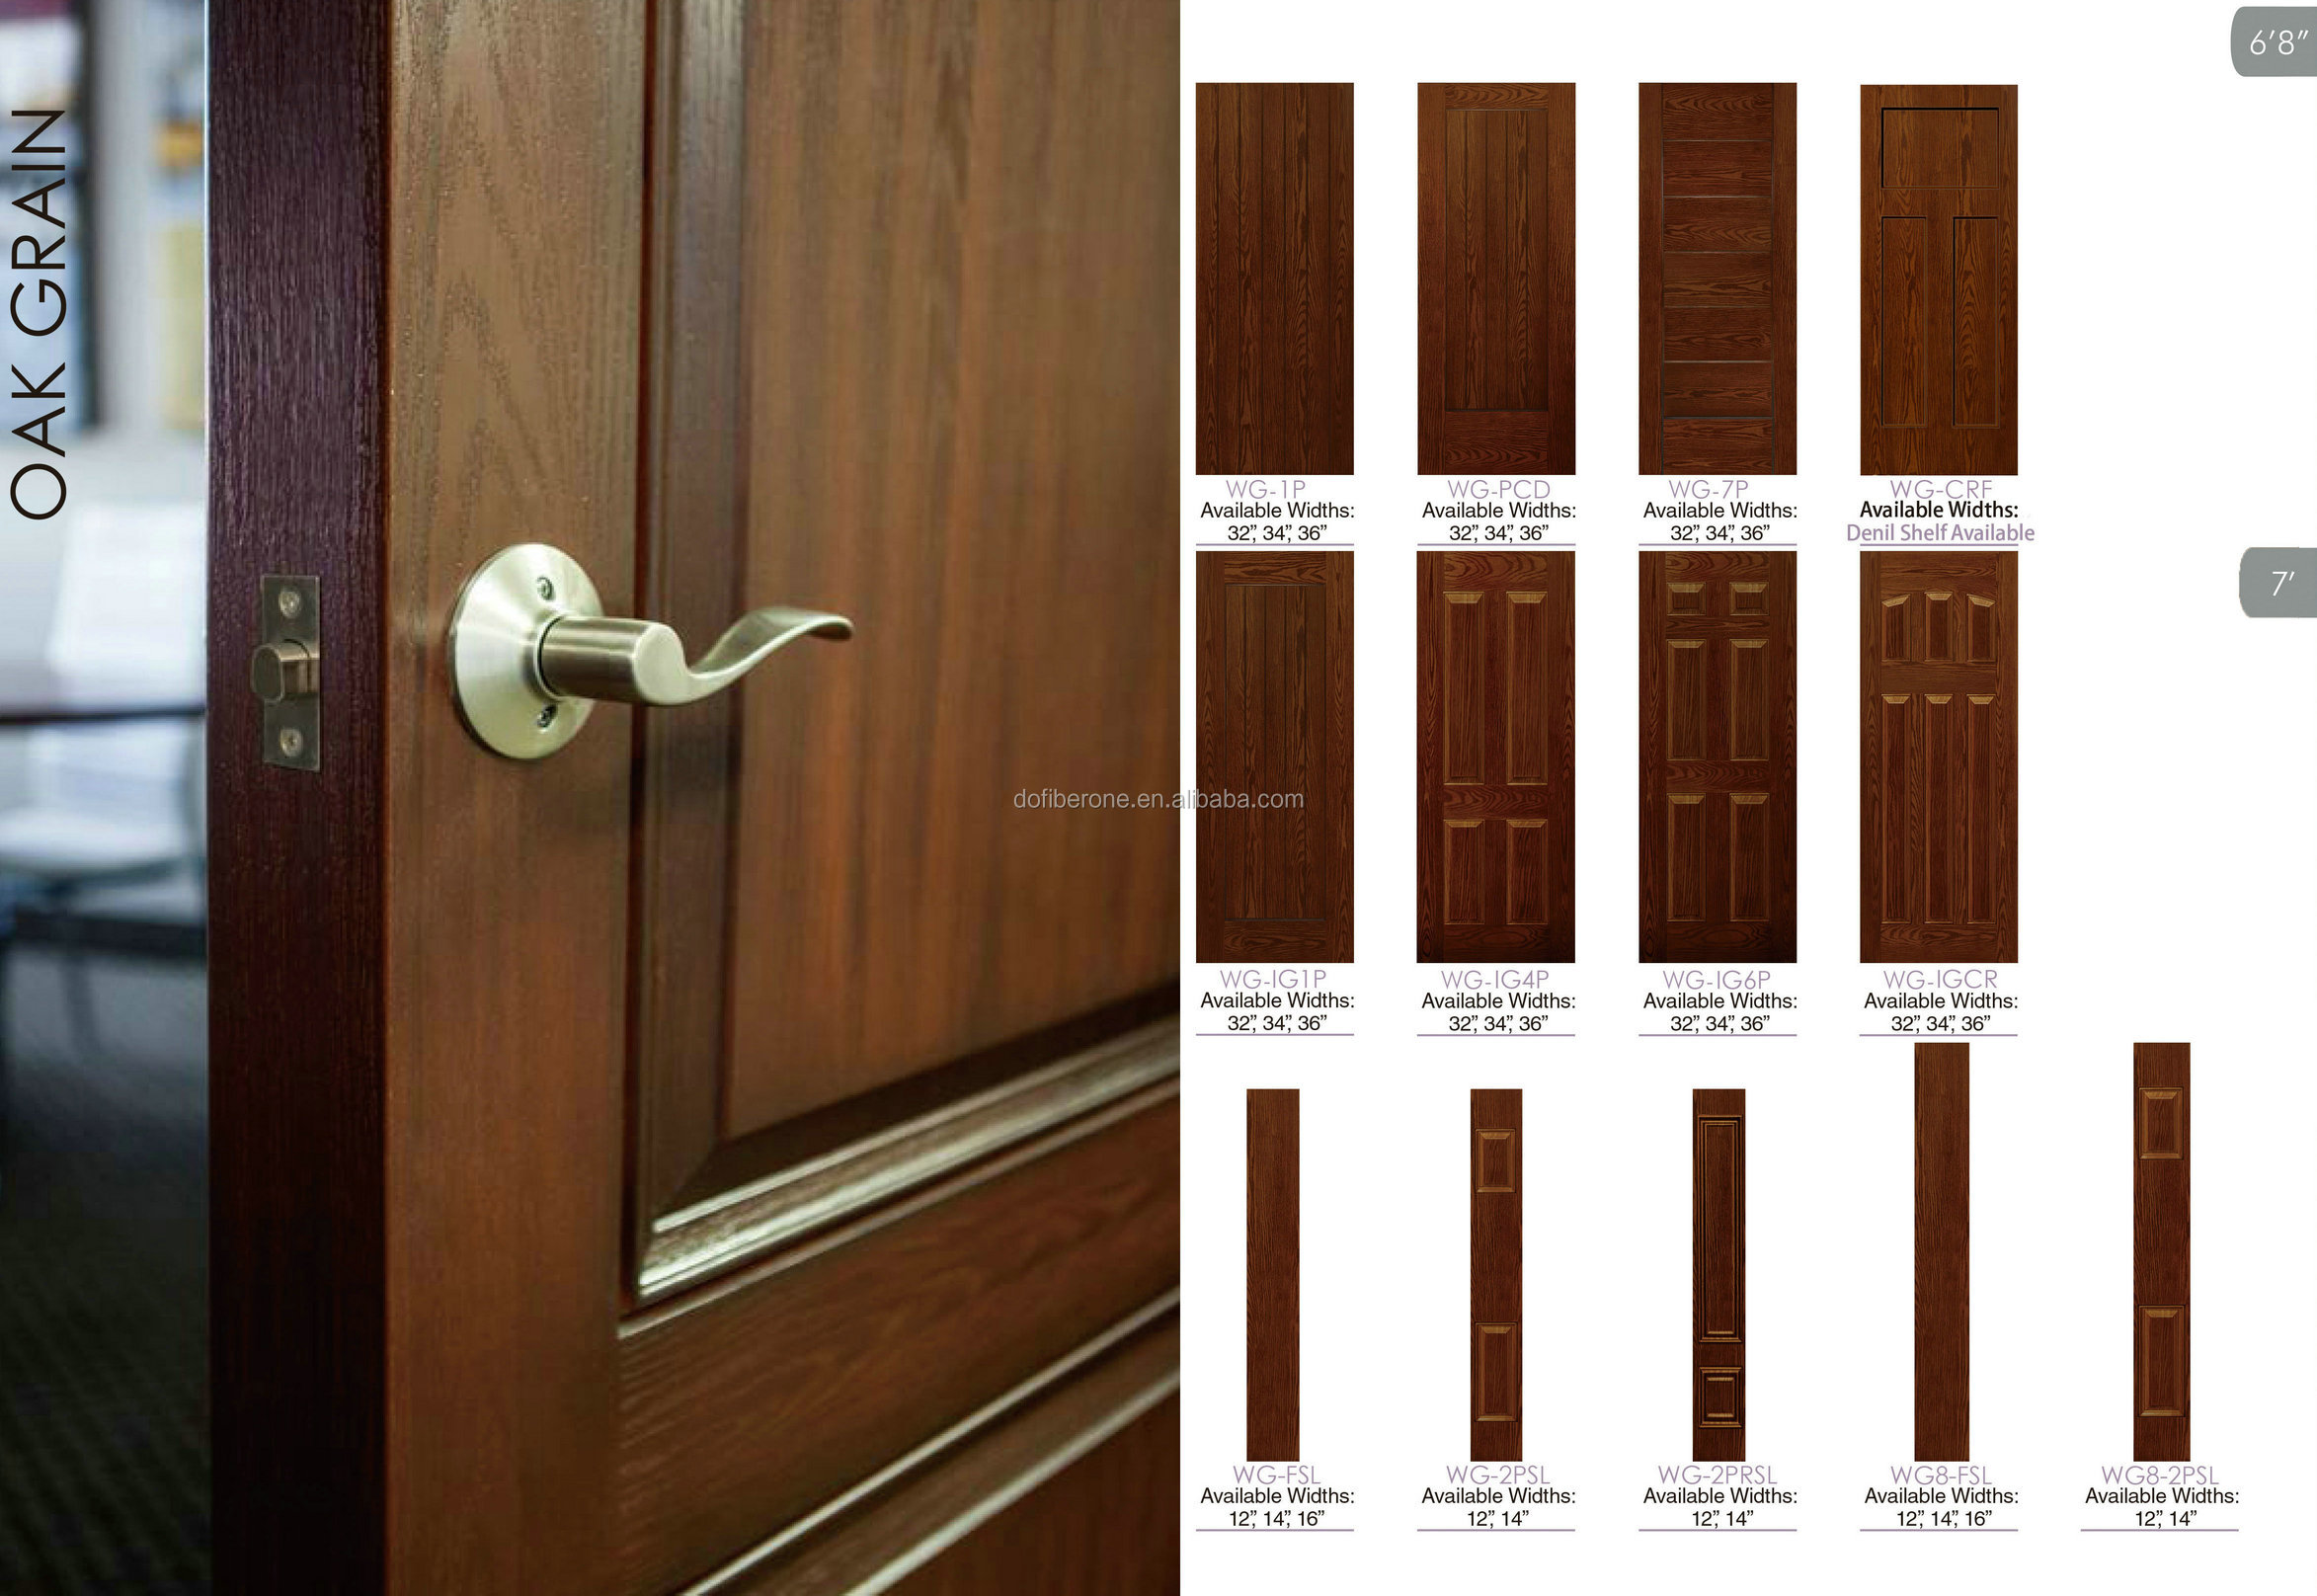 fiberglass glassfiber FRP GRP glazed blinds door